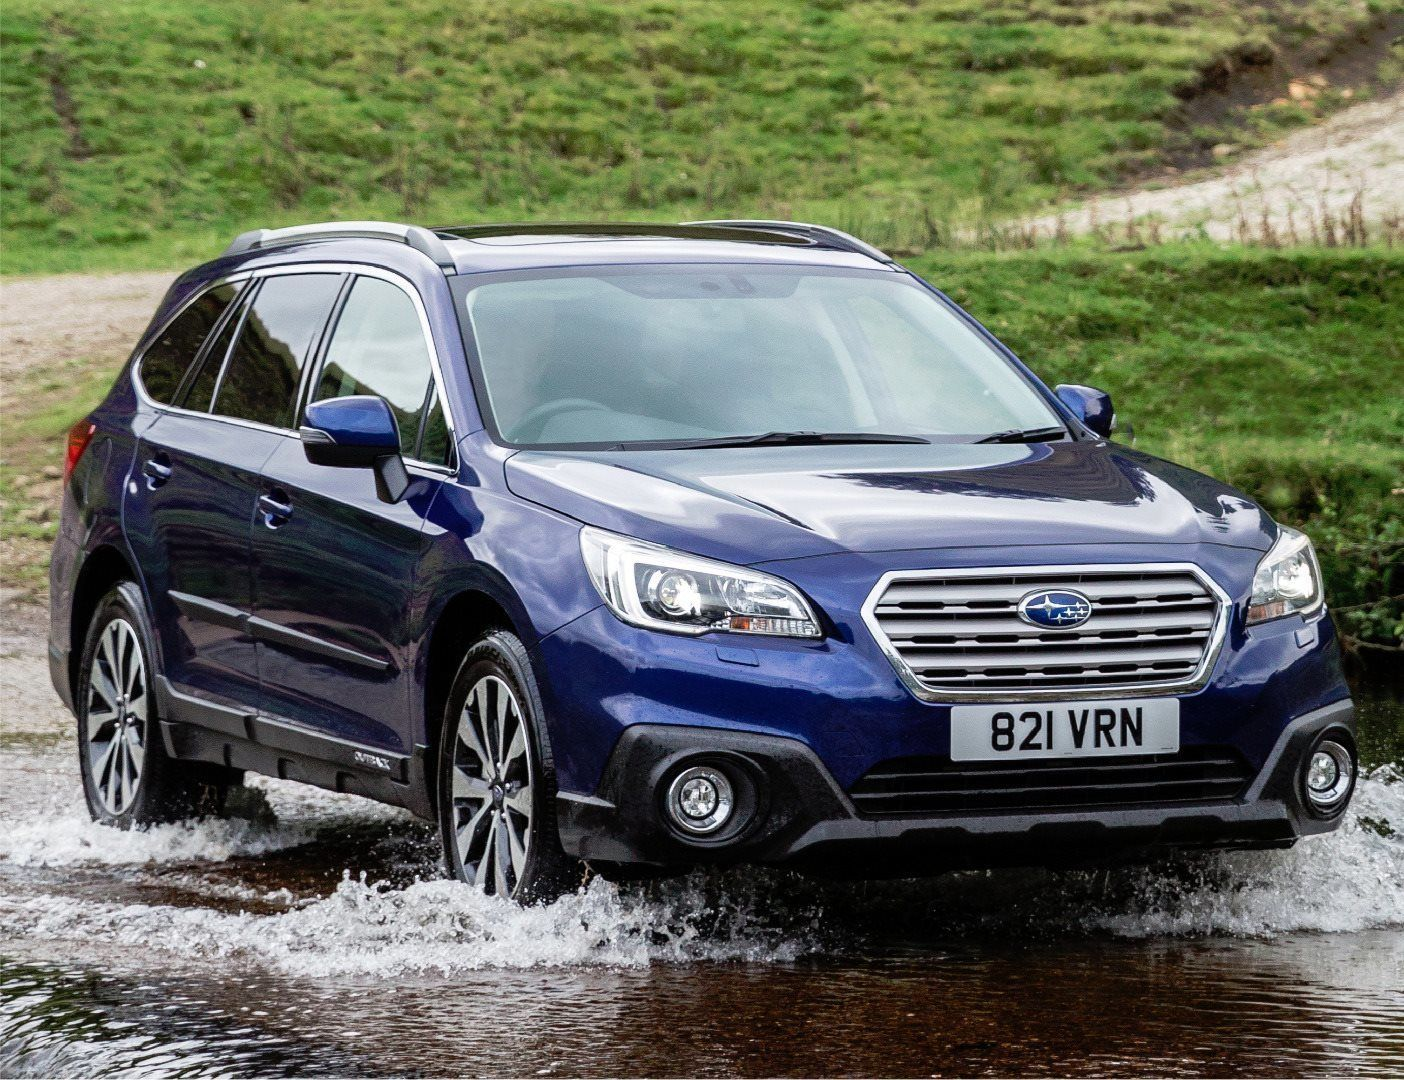 SUBARU EYESIGHT HIGHLY COMMENDED FOR SAFETY INNOVATION